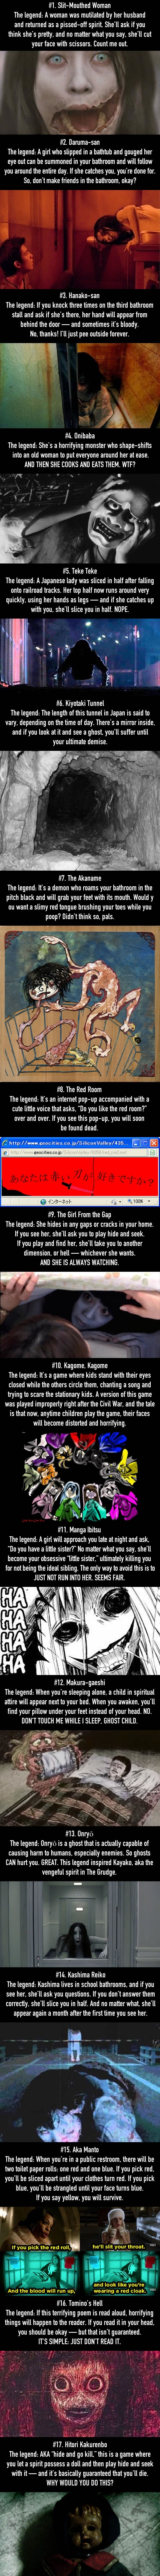 Do not read these Japanese urban legends before bed